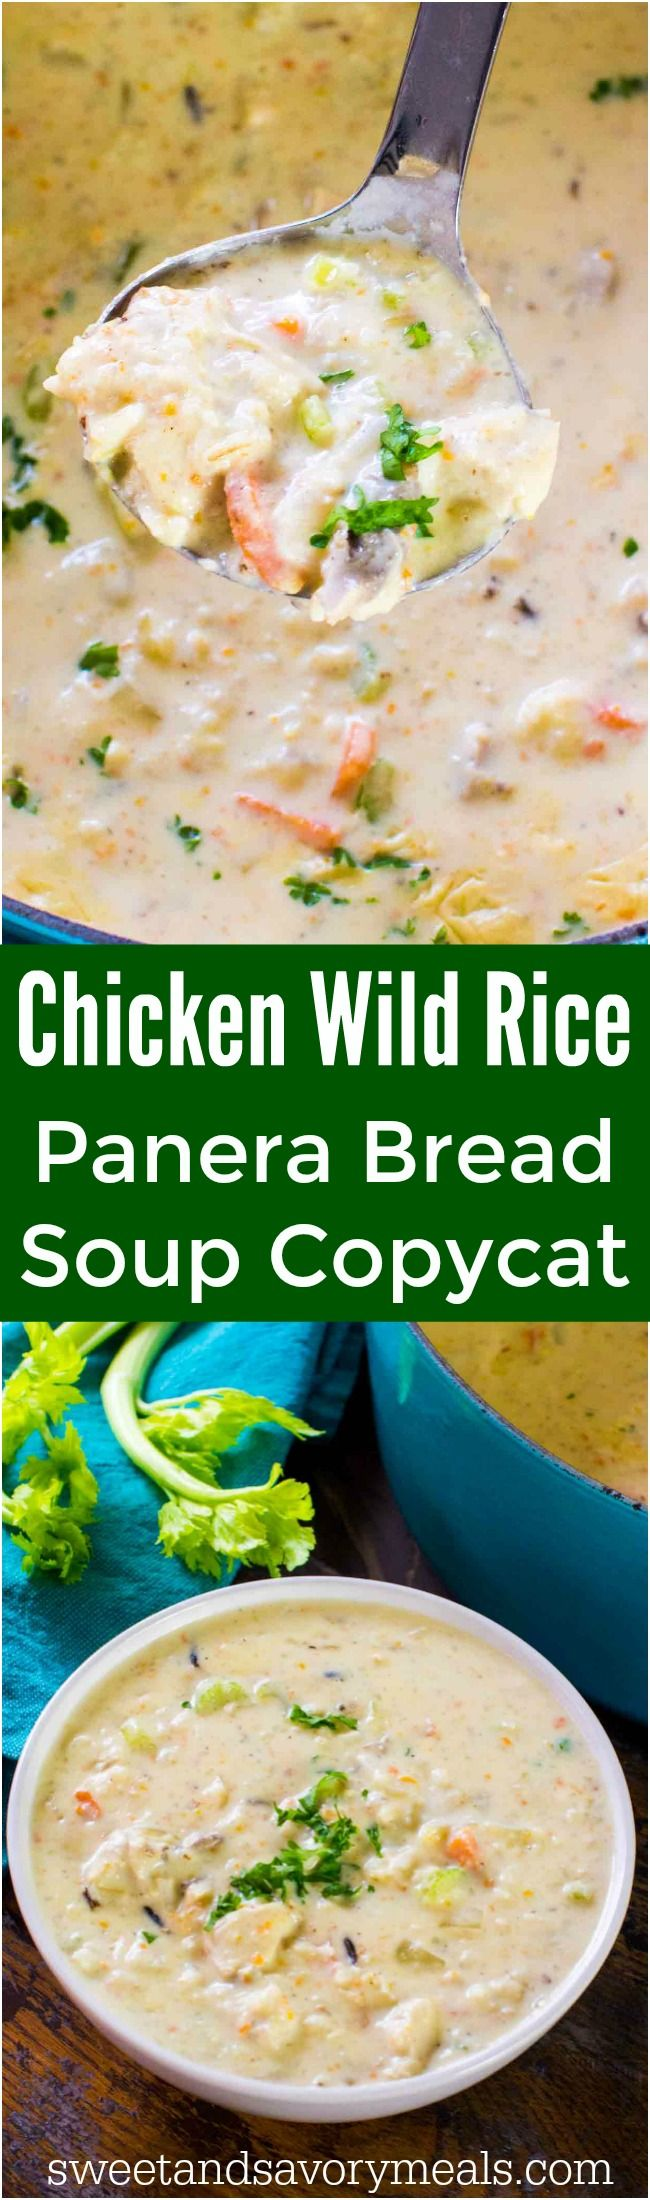 Easy Panera Bread Chicken Wild Rice Soup Copycat is the easy homemade version of the chain's comforting, hearty and creamy soup.